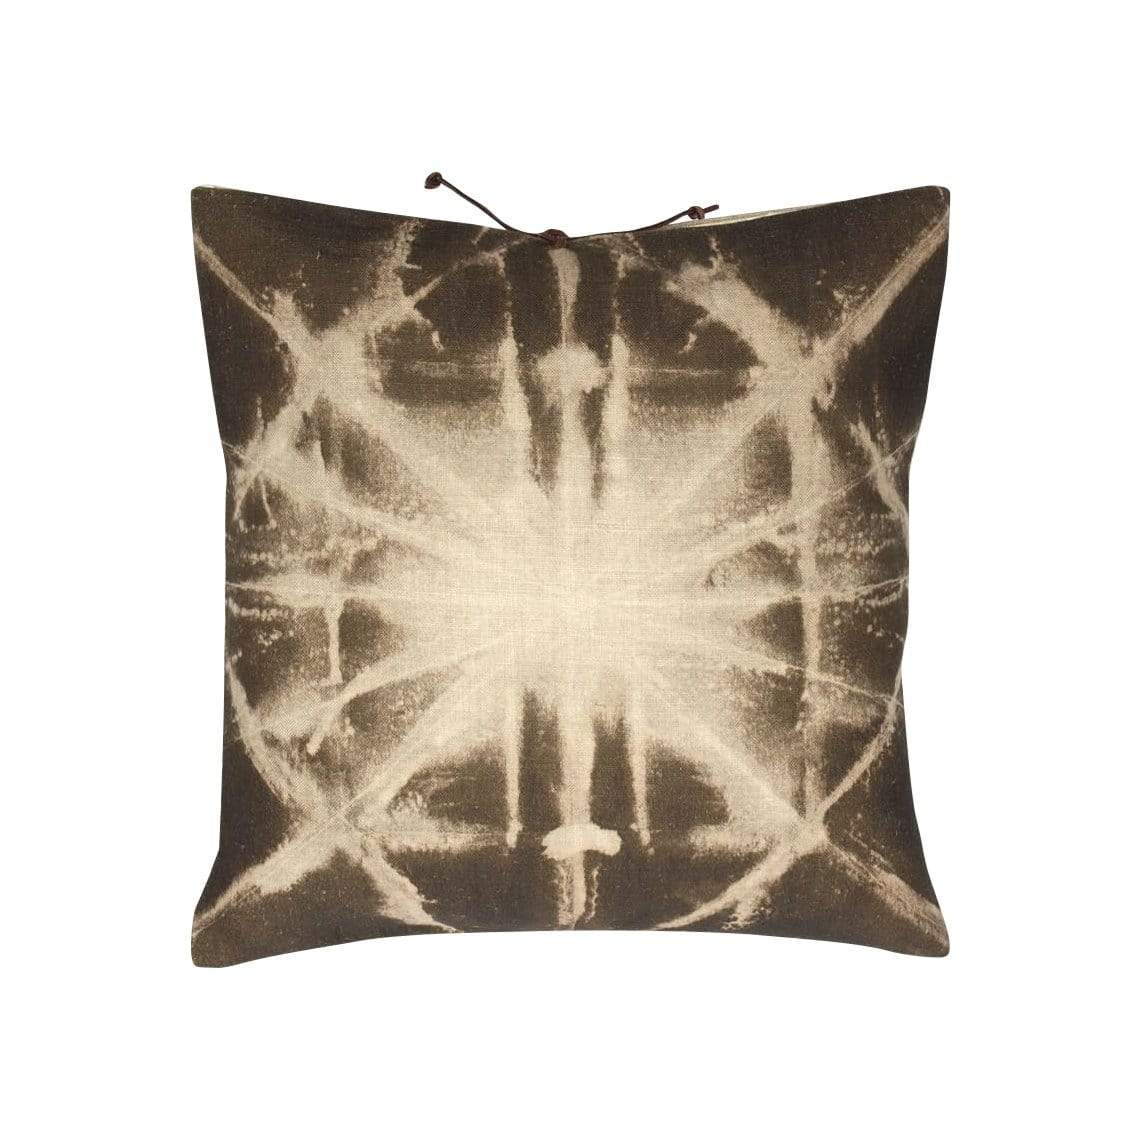 Michele Varian Cushions & Throws Default Printed Linen Pillow Starburst Olive